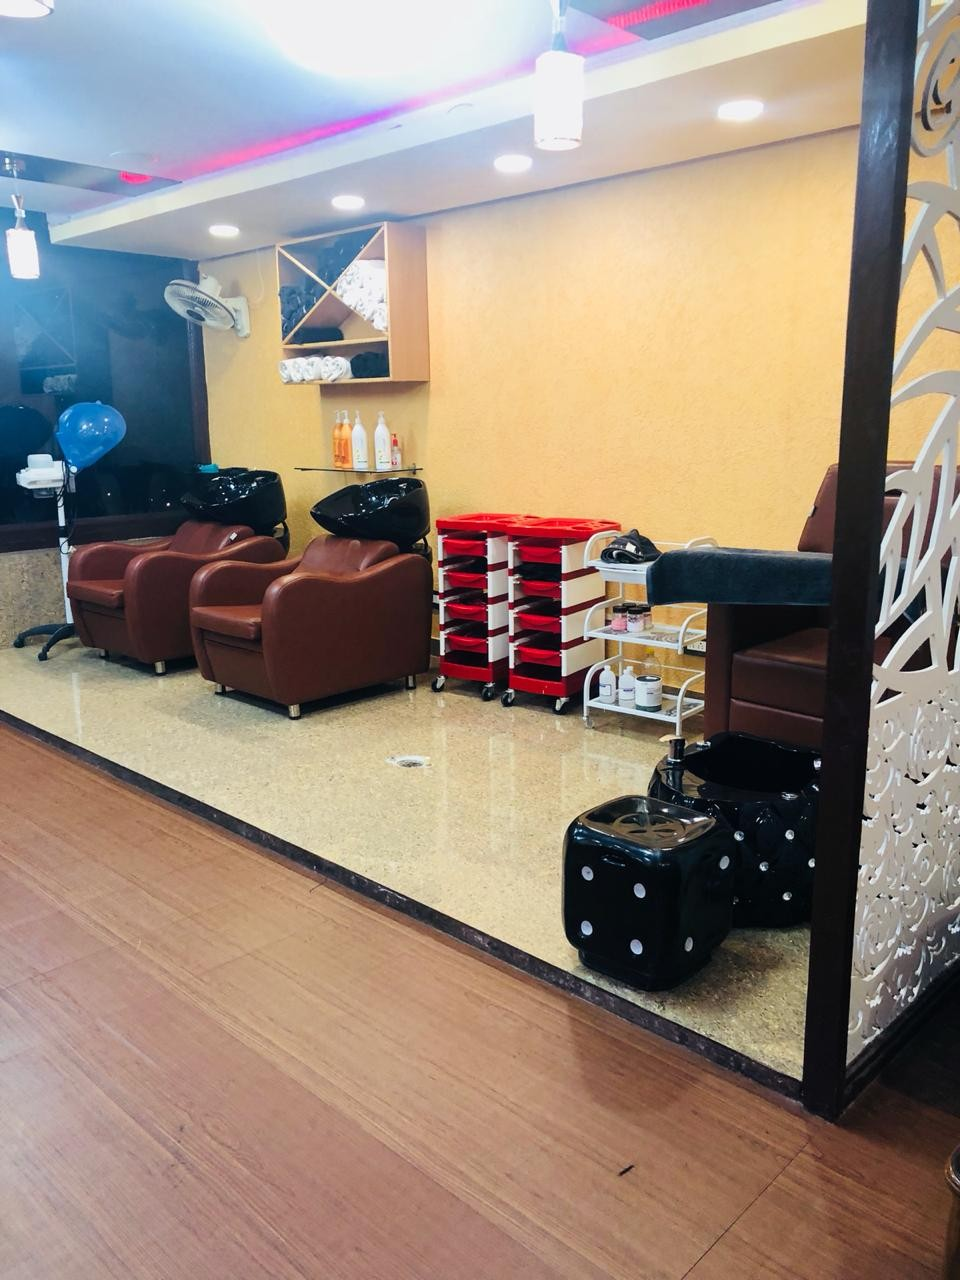 Cuticle Hair Mafia Salon Mohali - Get Manicure and Pedicure just in Rs 499 Only.